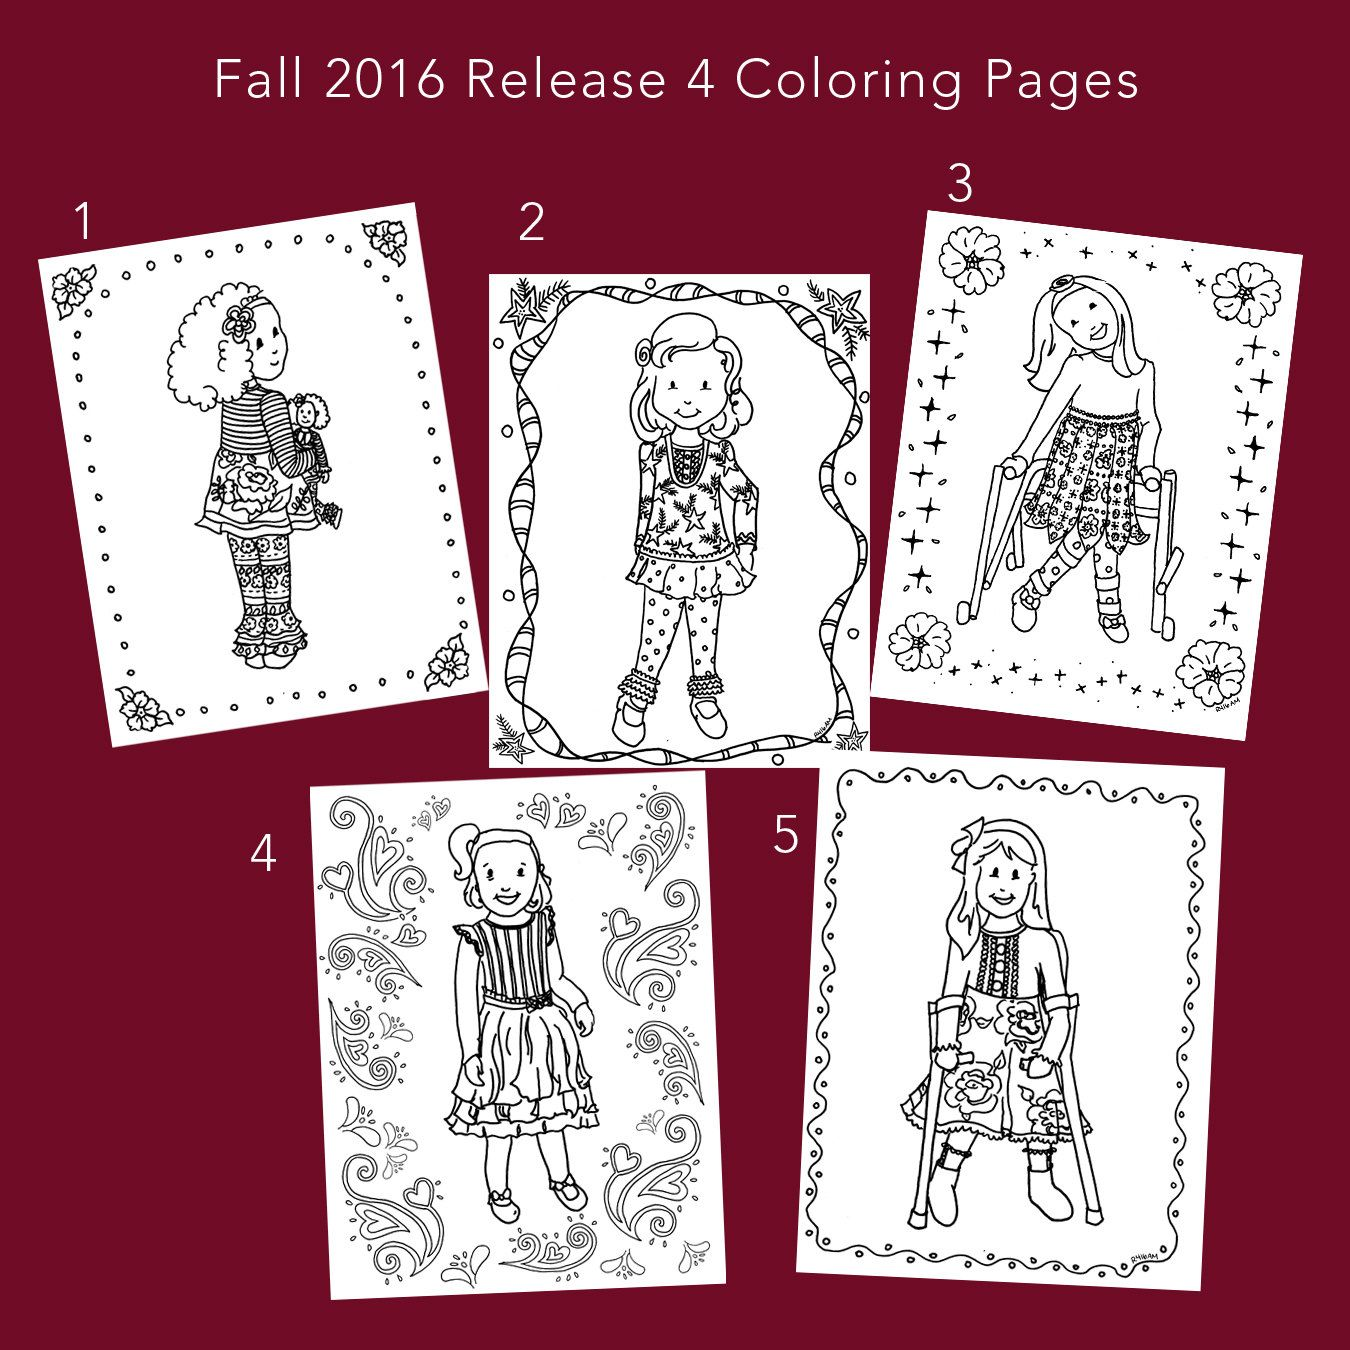 Matilda Jane Theme Release 4 Coloring Pages | Drawings | Pinterest ...